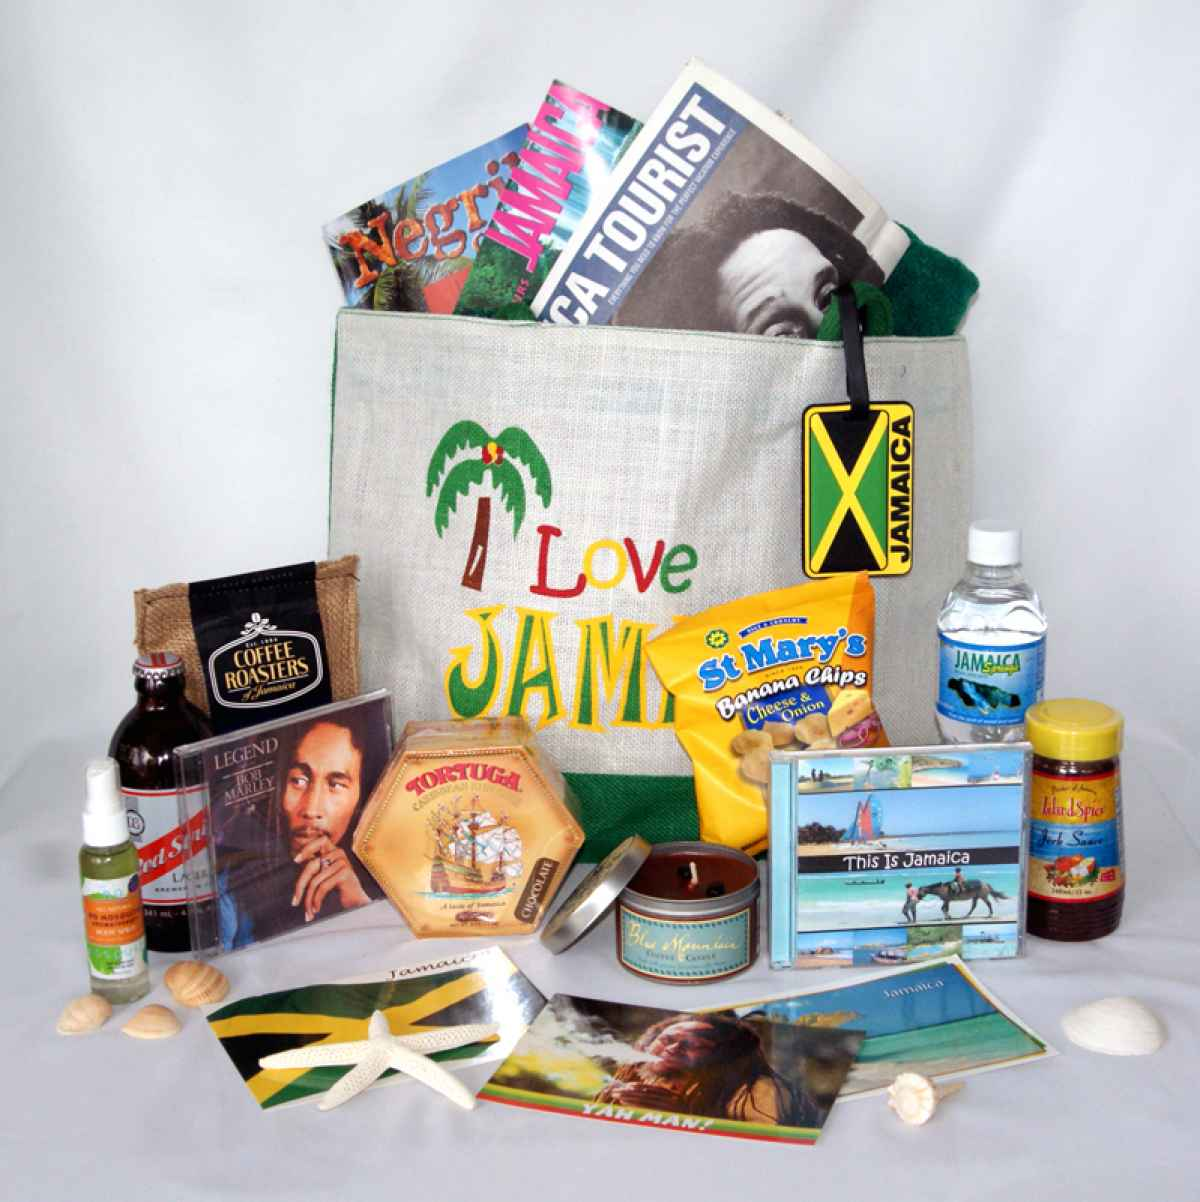 Wedding Gift Bag Ideas: 8 Destination Wedding Welcome Bag Ideas